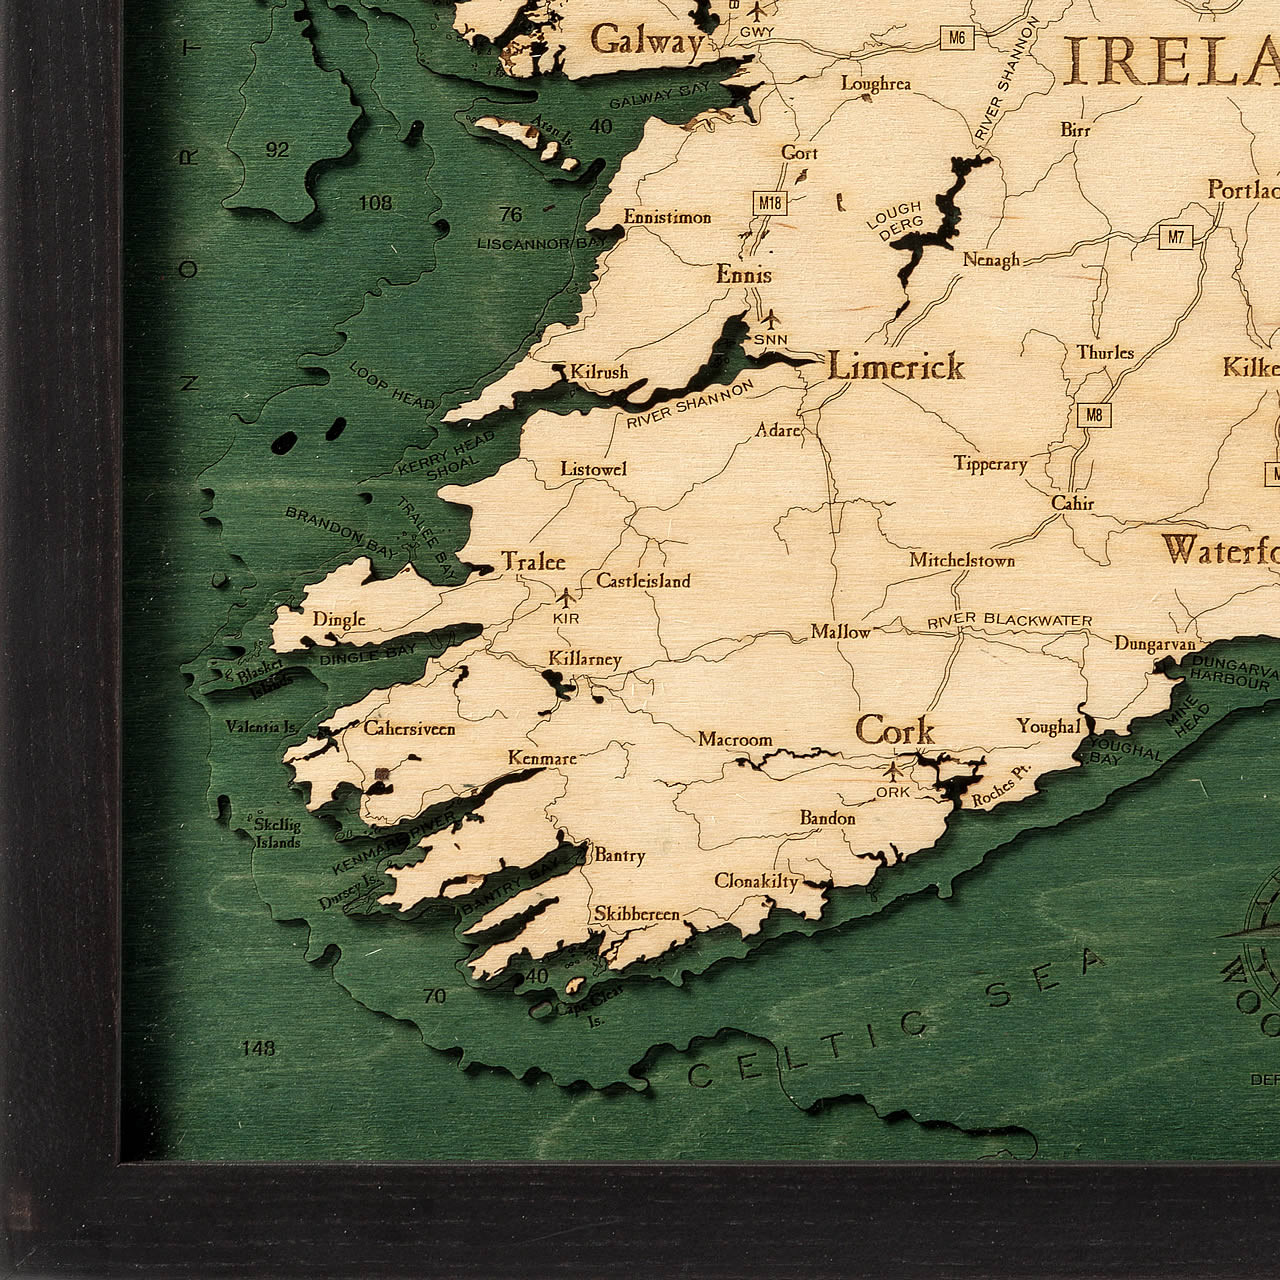 Ireland Map Of Arklow Pa on map of tn, map of oh, map of panama, map of wi, map of philadelphia, map of new york, map of colonial pennsylvania, map of az, map of ia, map of mn, map of wv, map usa, map of pennsylvania with cities, google maps pa, map of ms, map of il, county map pa, map of ohio, map of harrisburg pennsylvania, map of western pennsylvania,